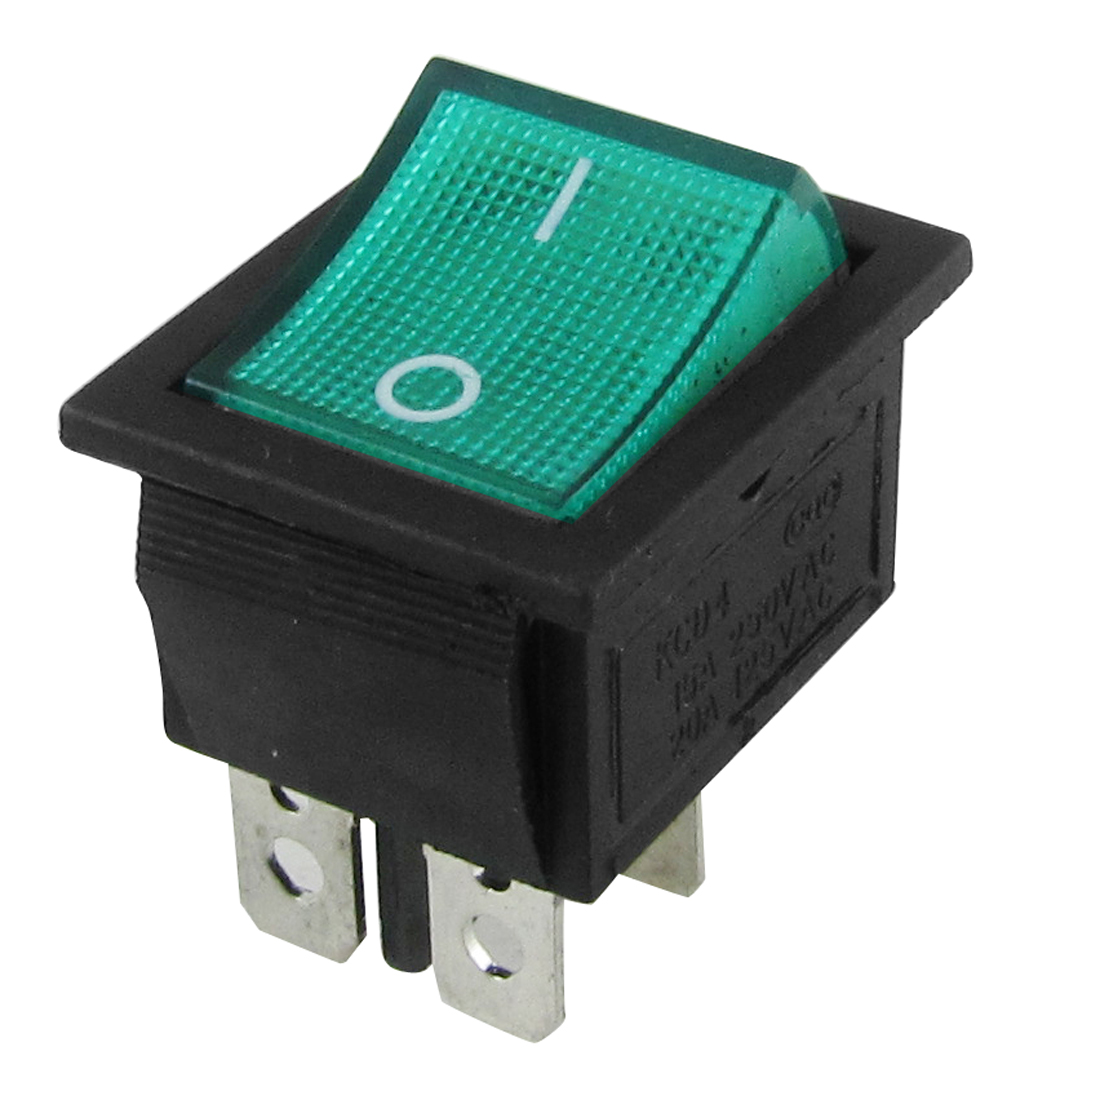 Green Light 4 Pin DPST On-Off Snap In Boat Rocker Switch 15A/250V 20A/125V AC